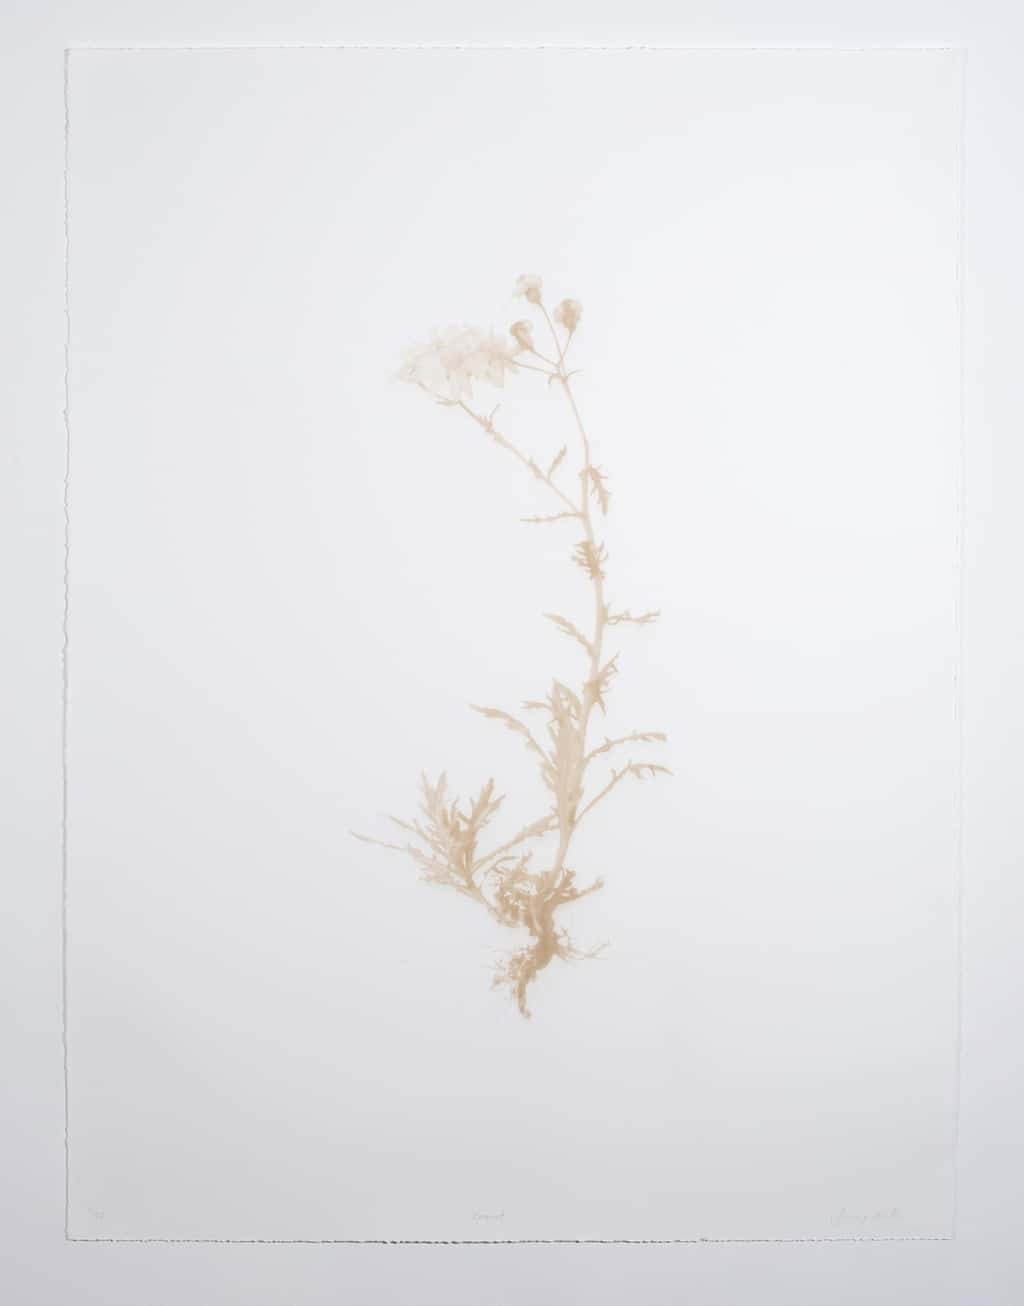 Ragwort (2018) Laser engraved print on somerset paper, 75 x 55 cm, Edition of 25. Showing full image to torn edges